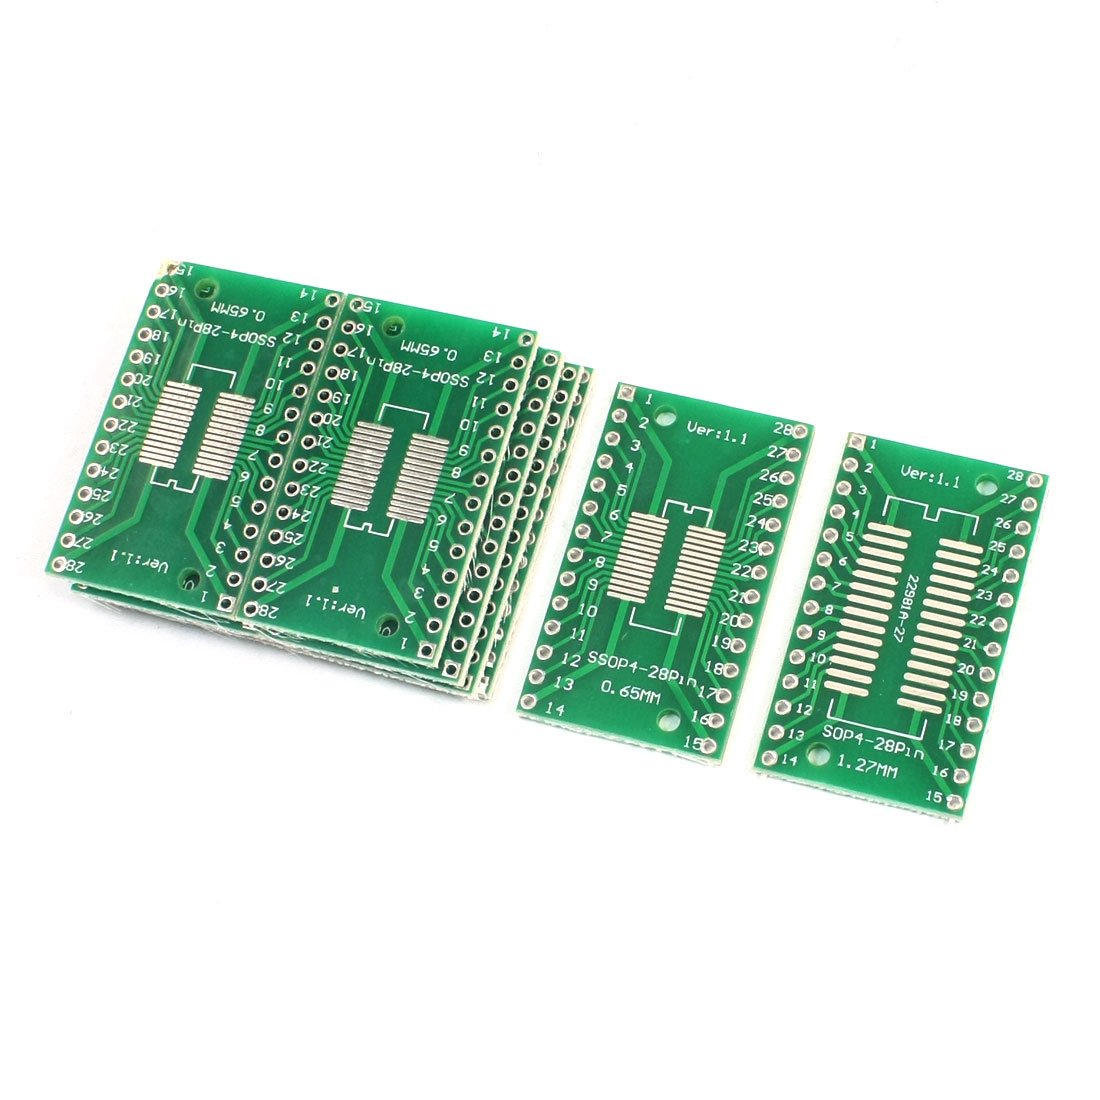 10Pcs SOP28 SSOP28 TSSOP28 0.65mm 1.27mm to DIP28 2.54mm PCB Adapter Converter